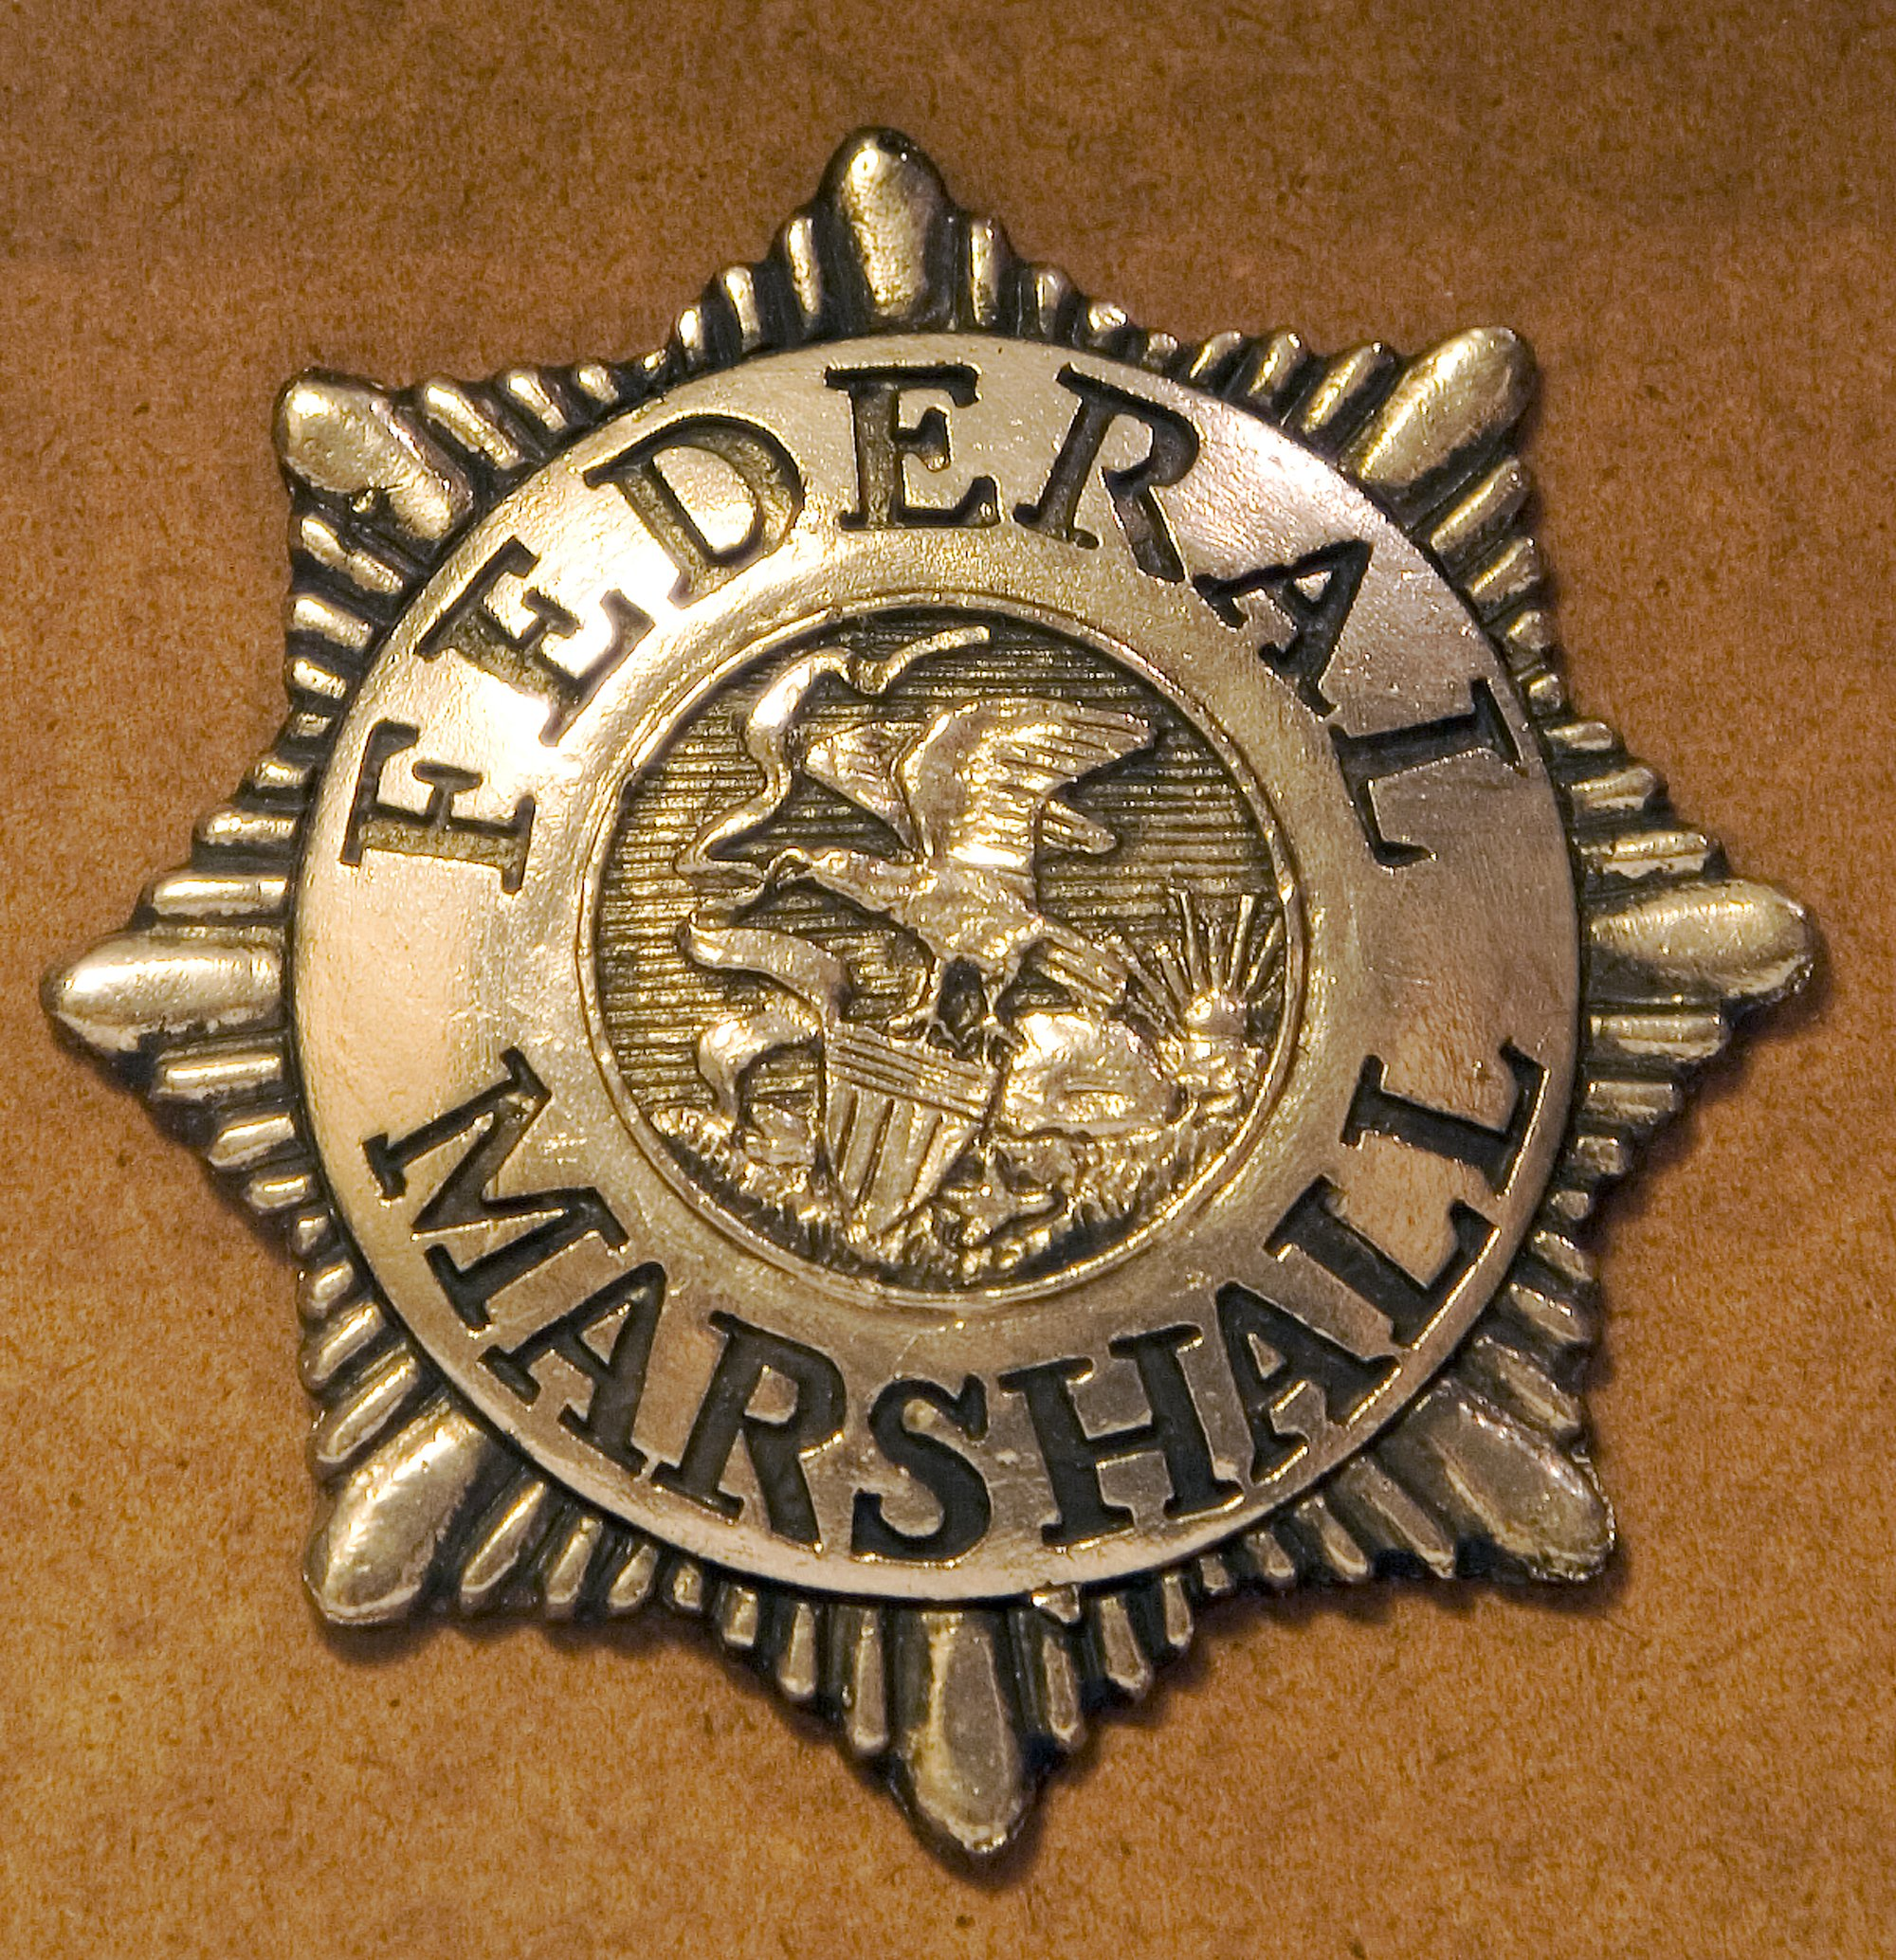 Pictured is a U.S. Marshal badge. SHUTTERSTOCK/ Steve Adamson